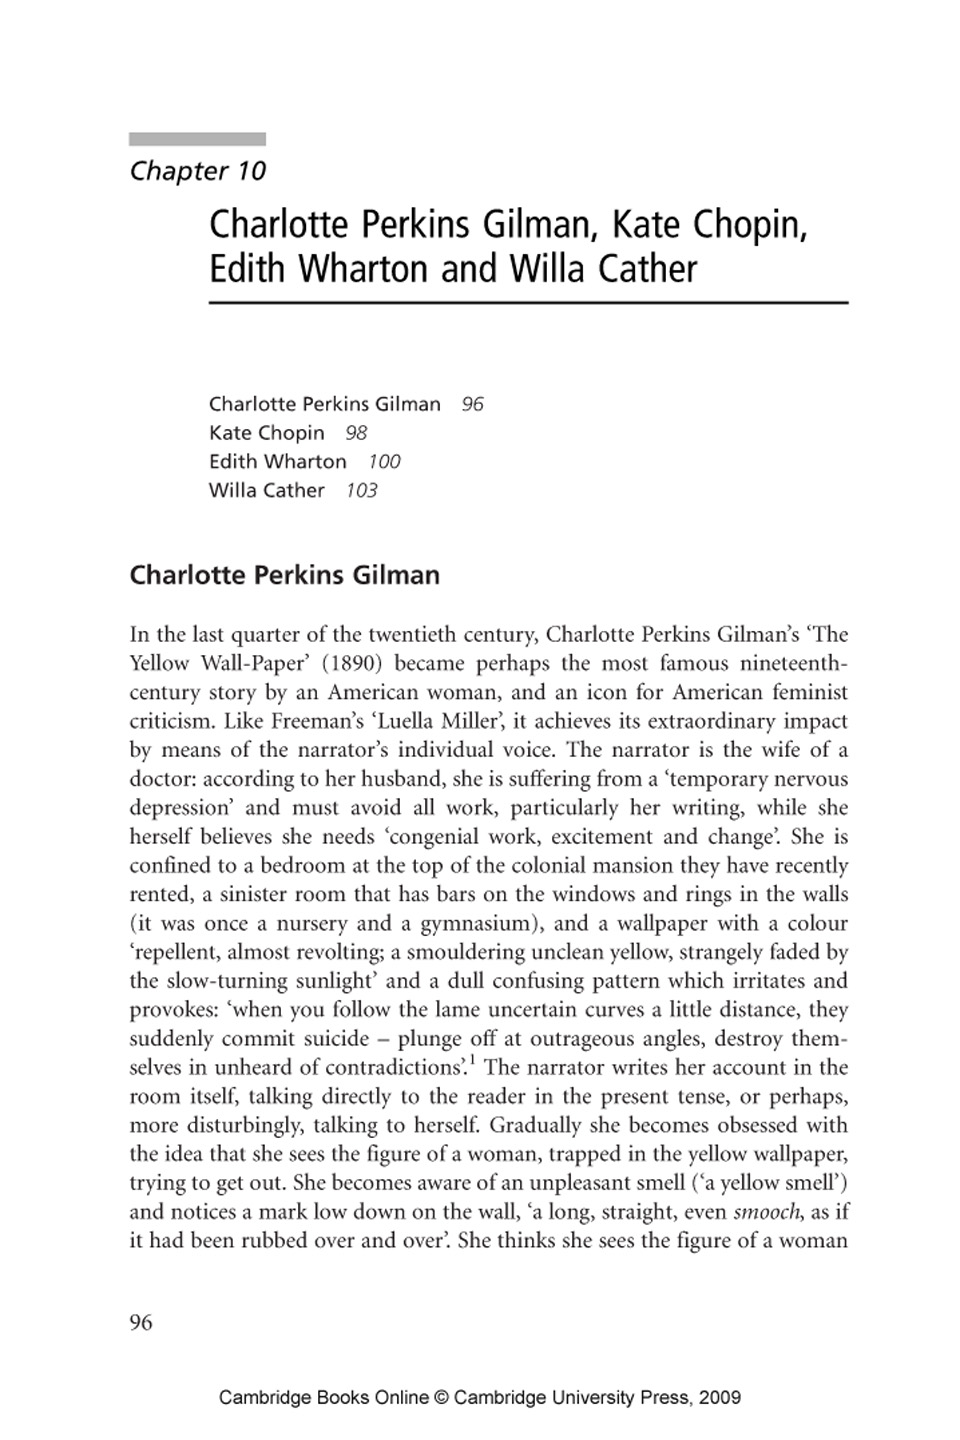 feminist criticism of the yellow wallpaper End of myra jehlen In the 960x1440